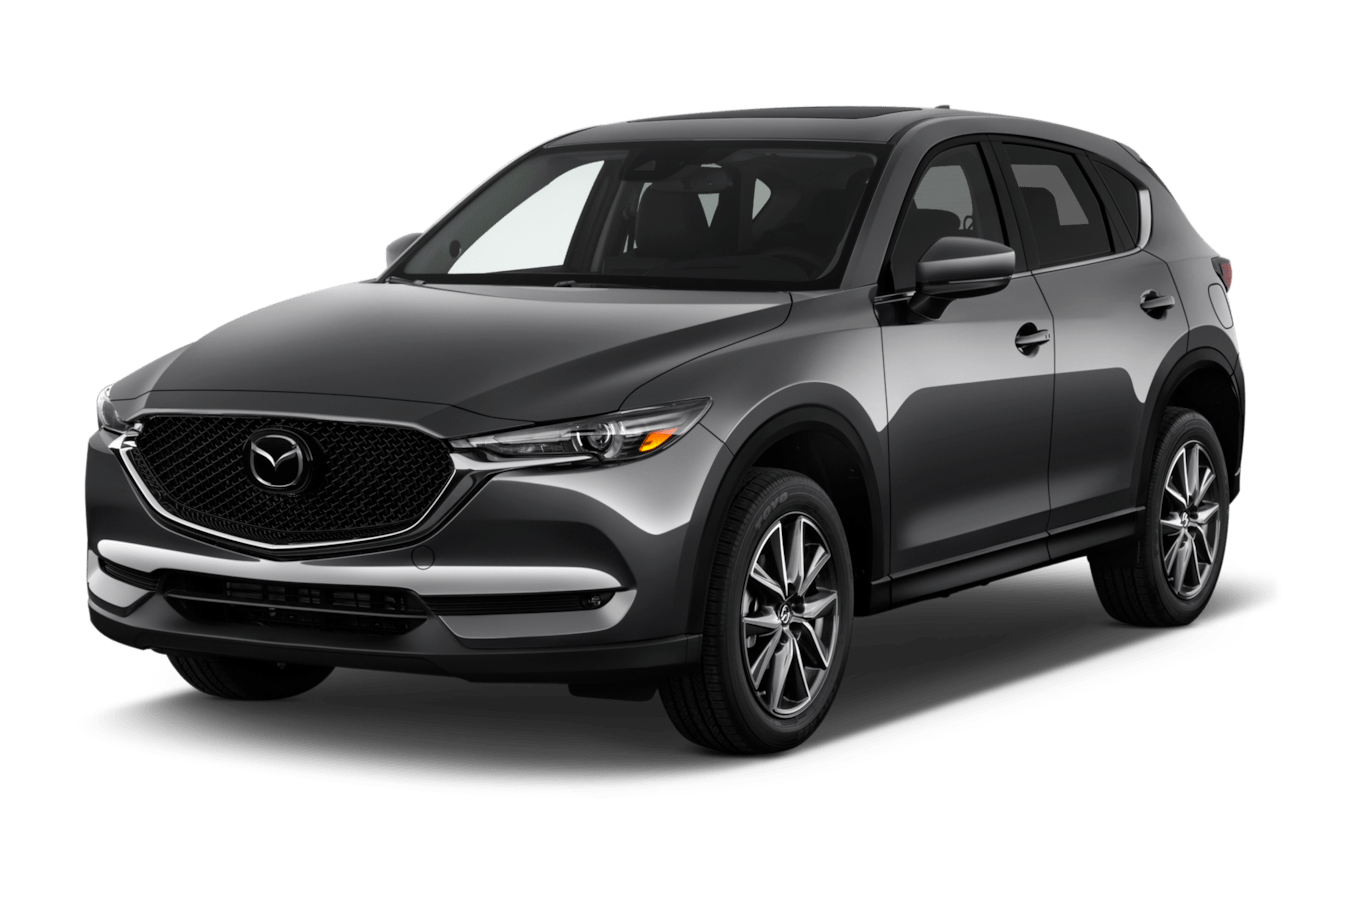 Mazda CX-5 Reviews: Research New & Used Models | Motor Trend Canada